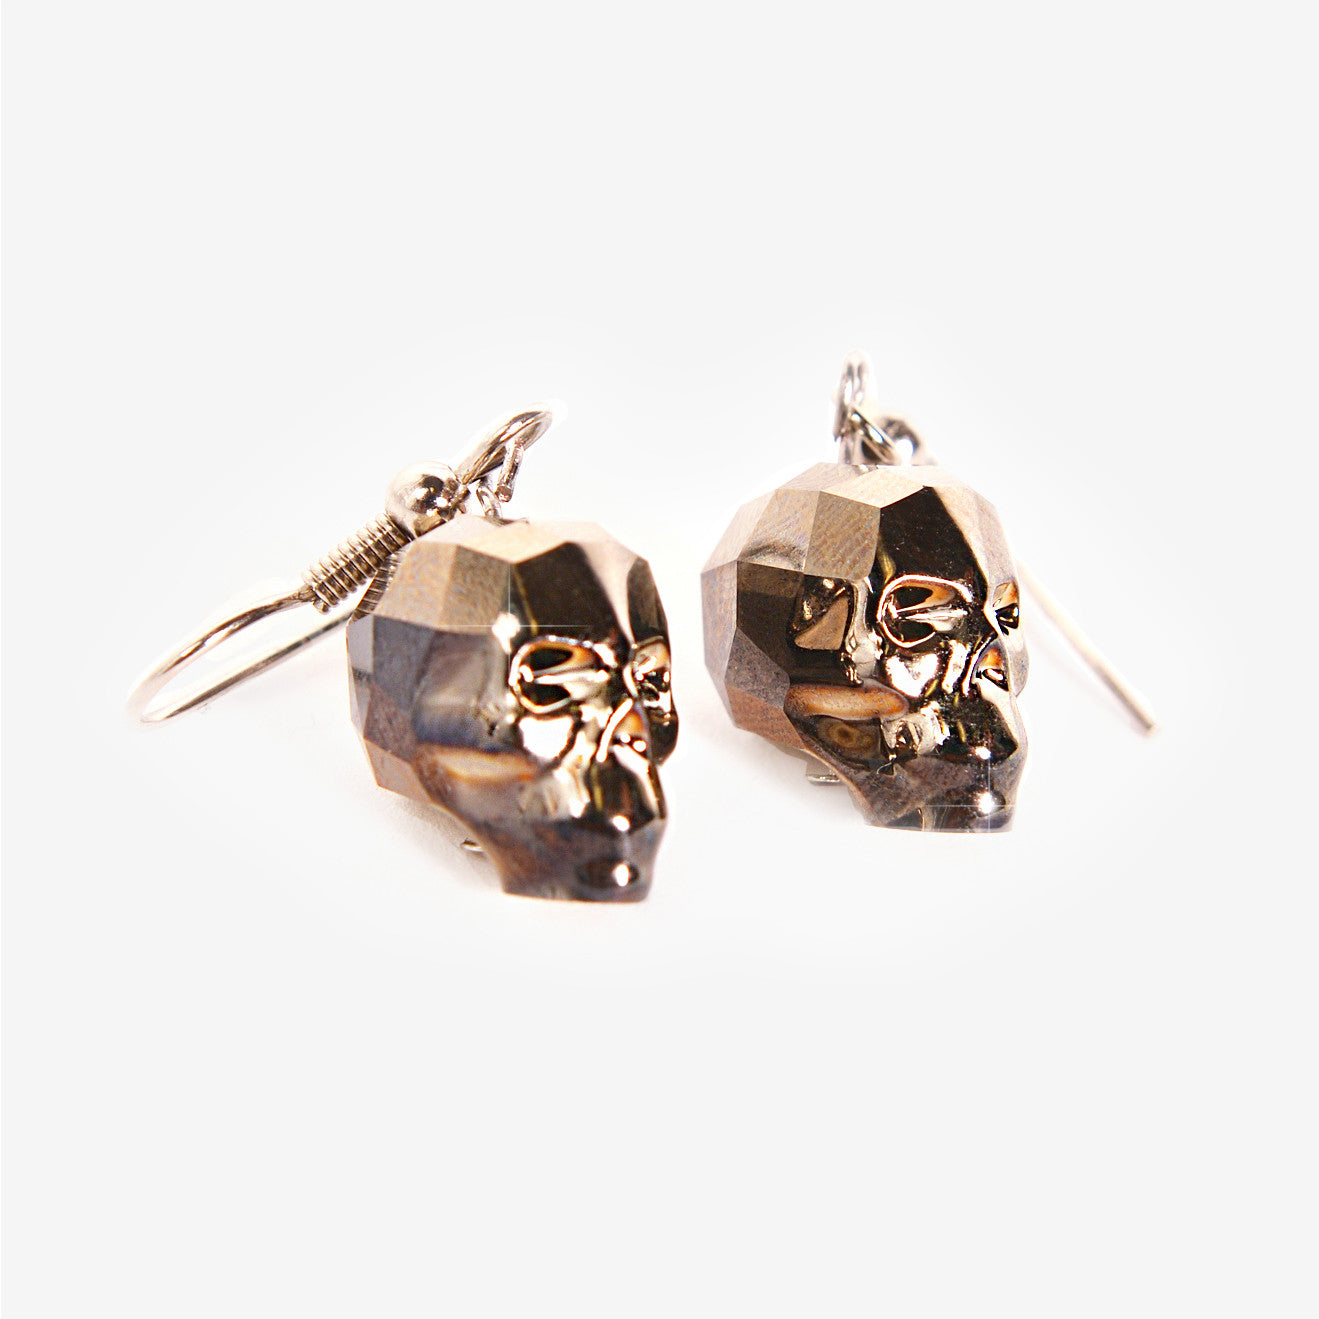 CRYSTAL SKULL EARRINGS | Gold Shadow Chromium Mila Fargo T shirt